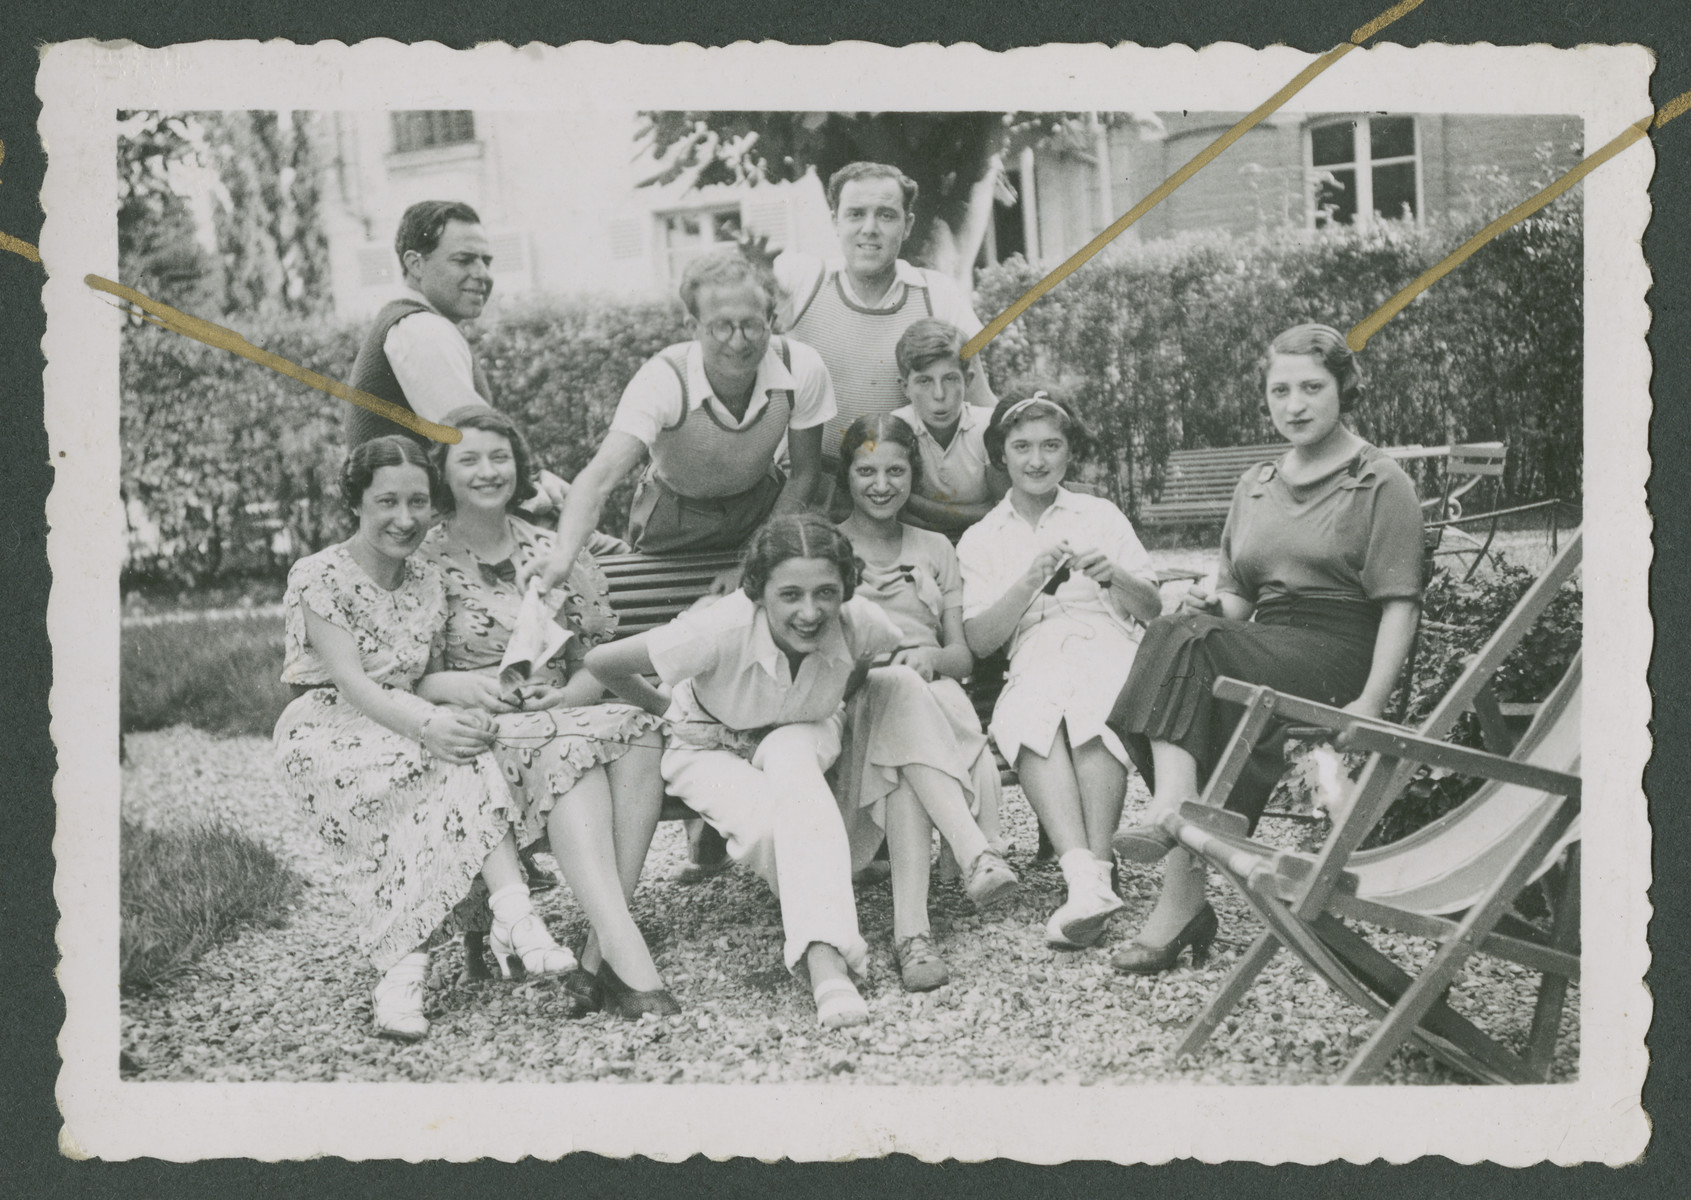 Friends of the Arditti family relax in a garden.  Yolanda is pictured second from the left.  Elsa is pictured on the far right  Edouard Arditti is the younger boy in the center.